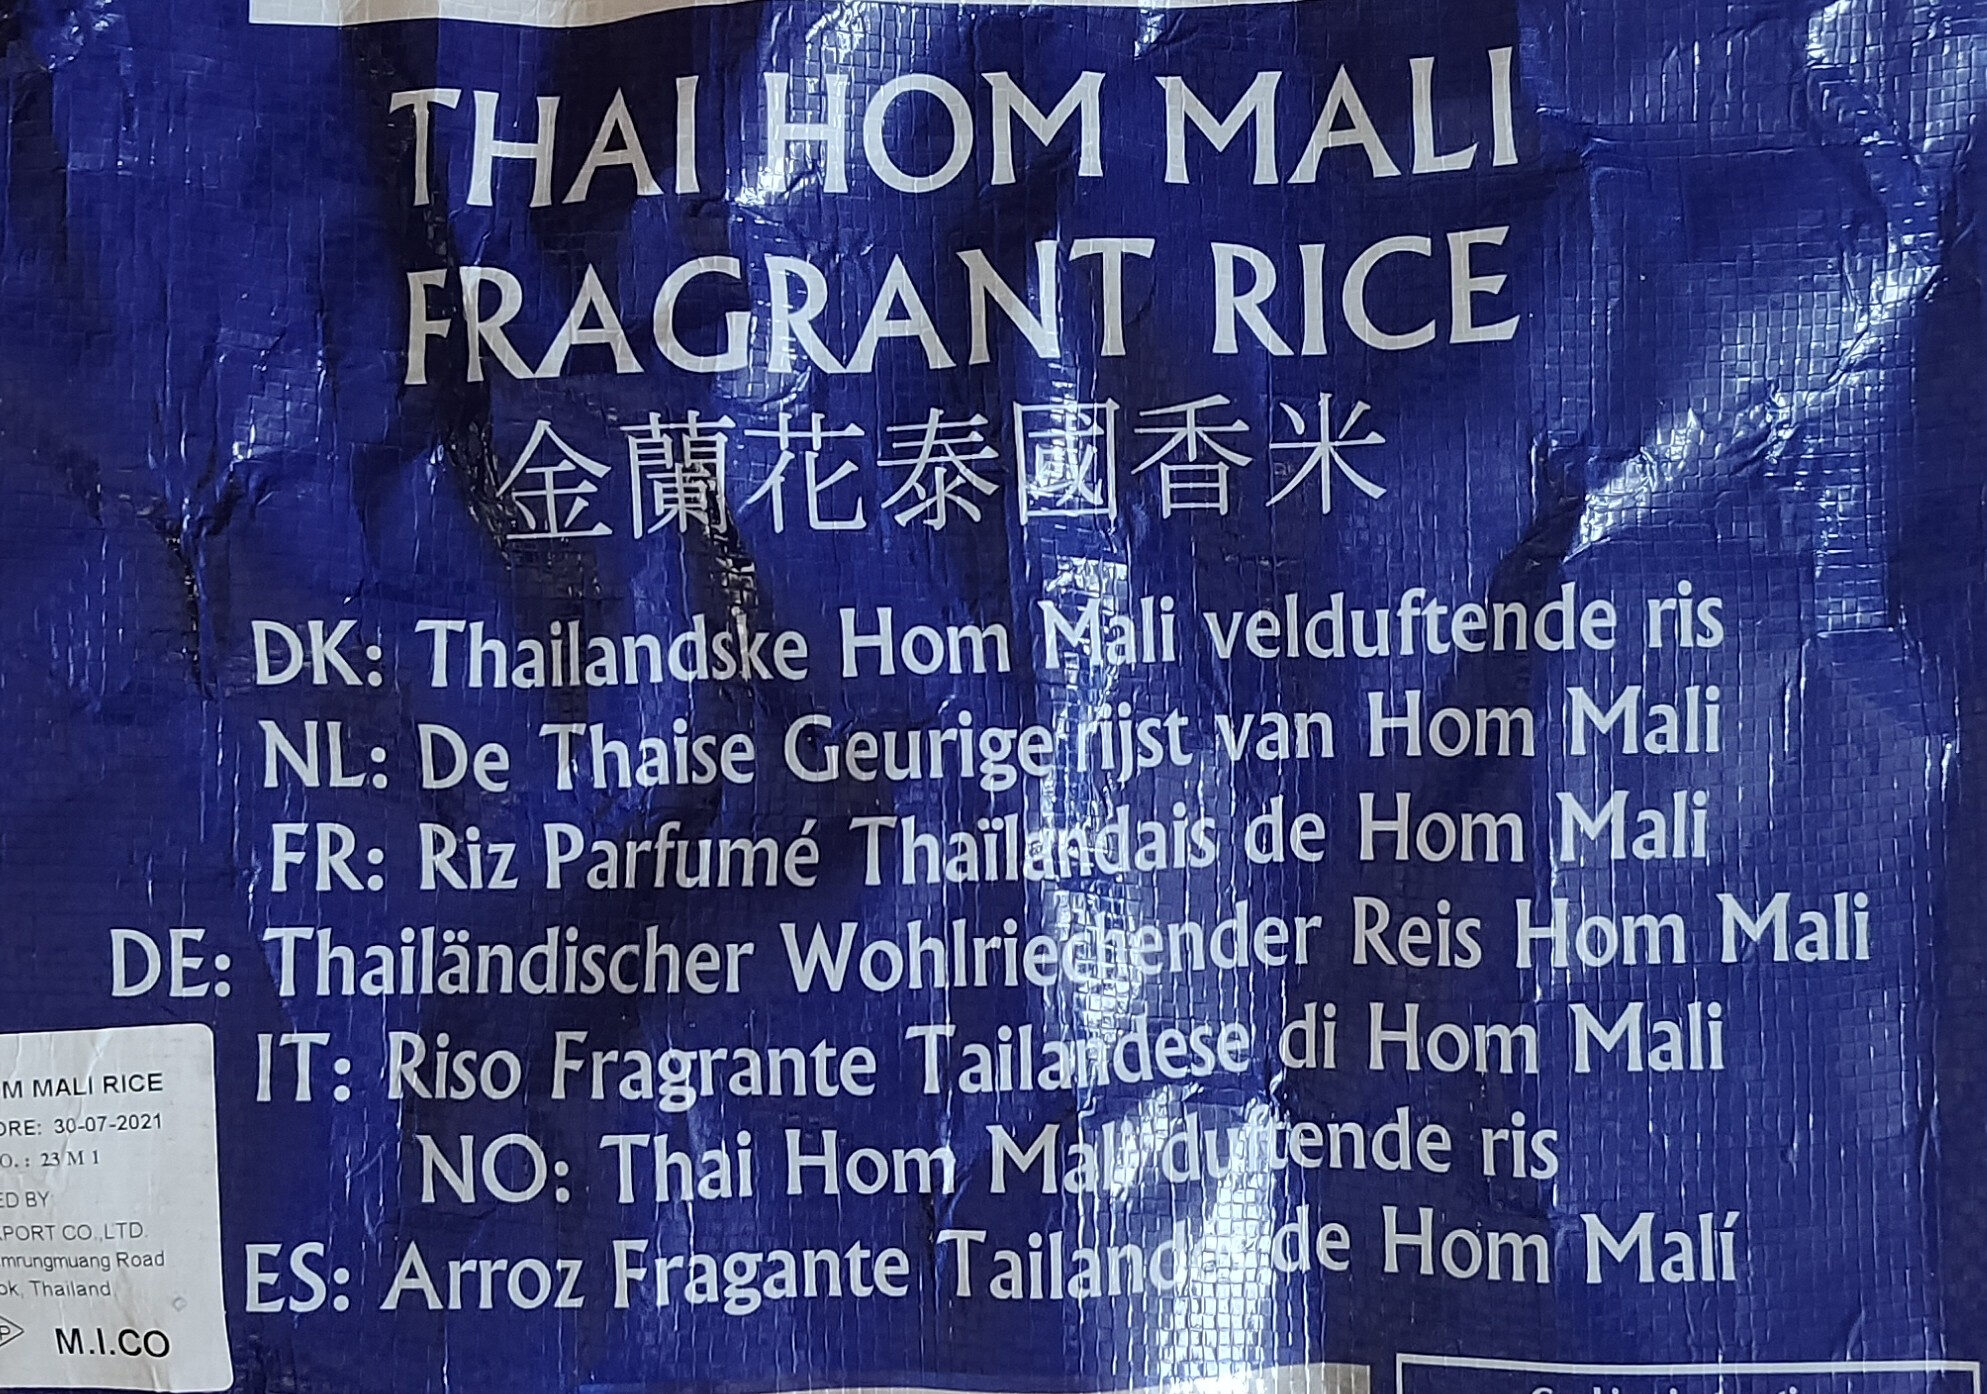 Thai Hom Mali Fragrant Rice - Ingrédients - en